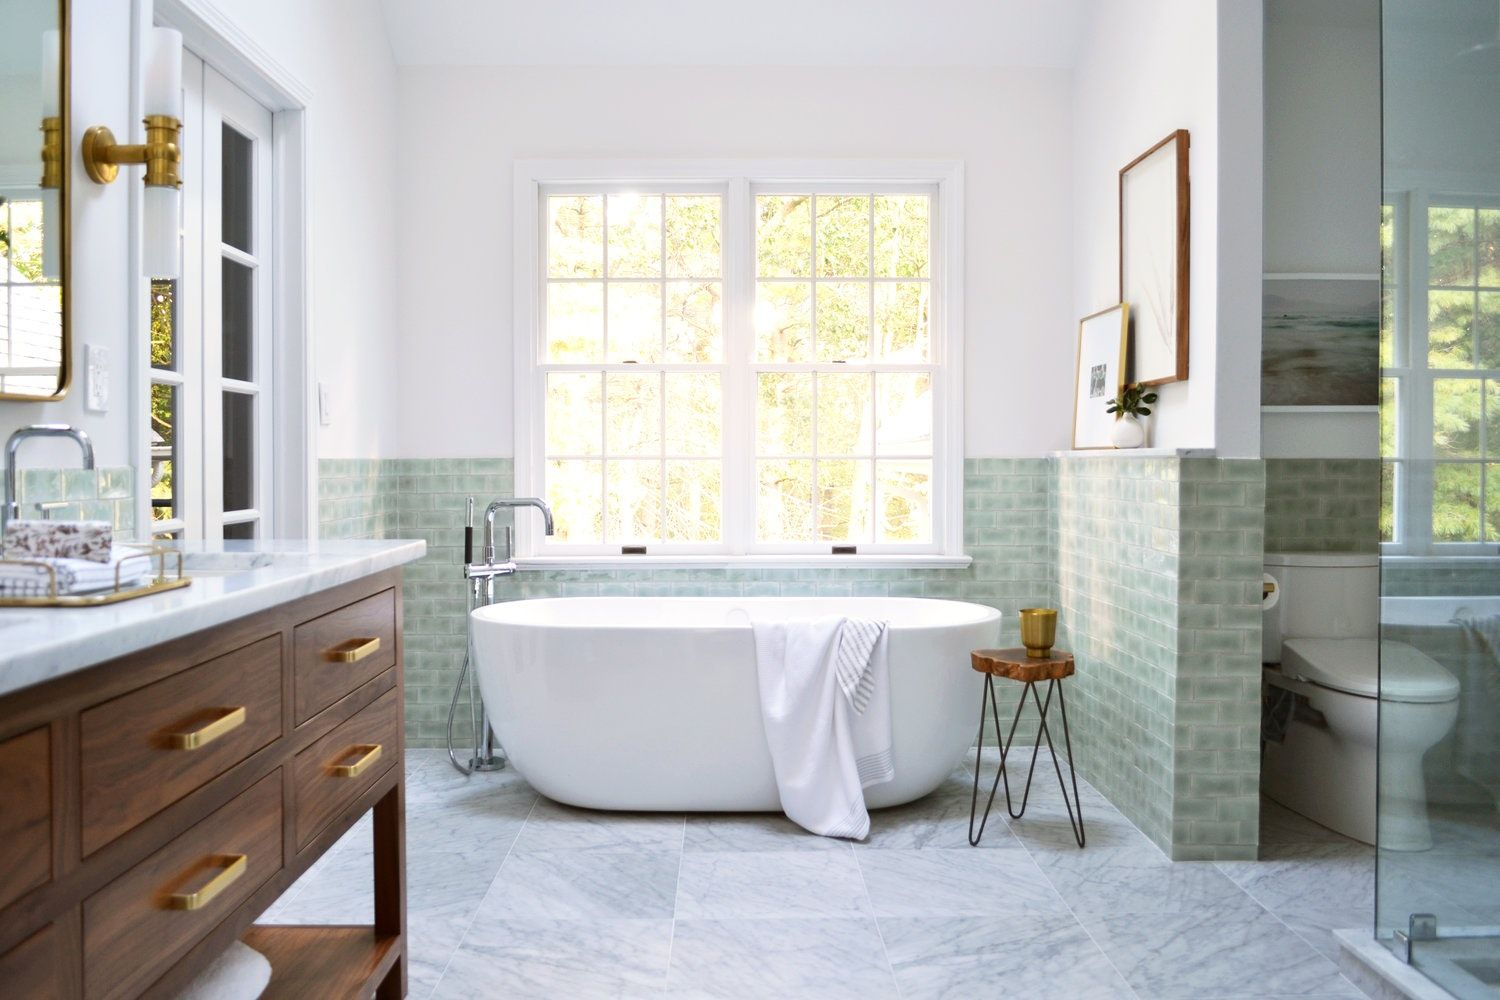 Photo of Our Favorite Bathroom Trends To Watch Out For in 2018